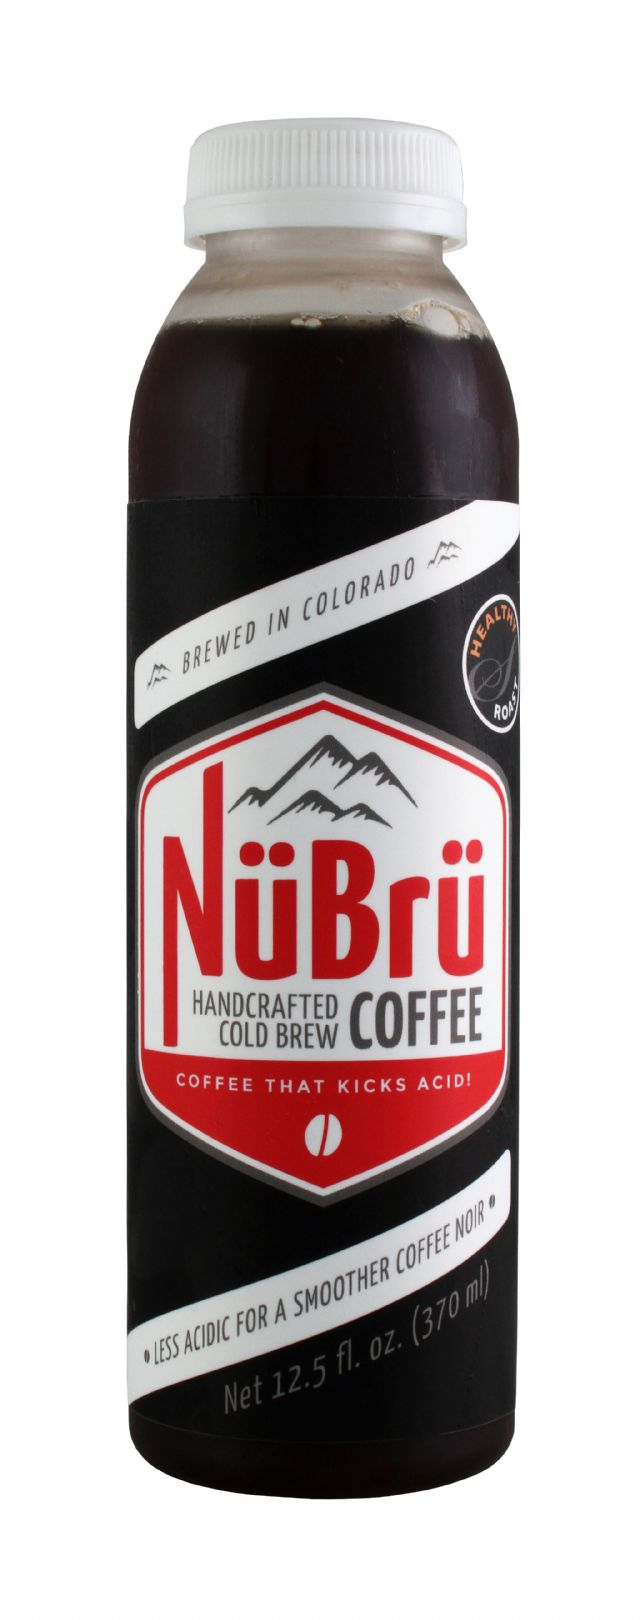 NuBru Handcrafted Cold Brew Coffee: Nubru Healthy